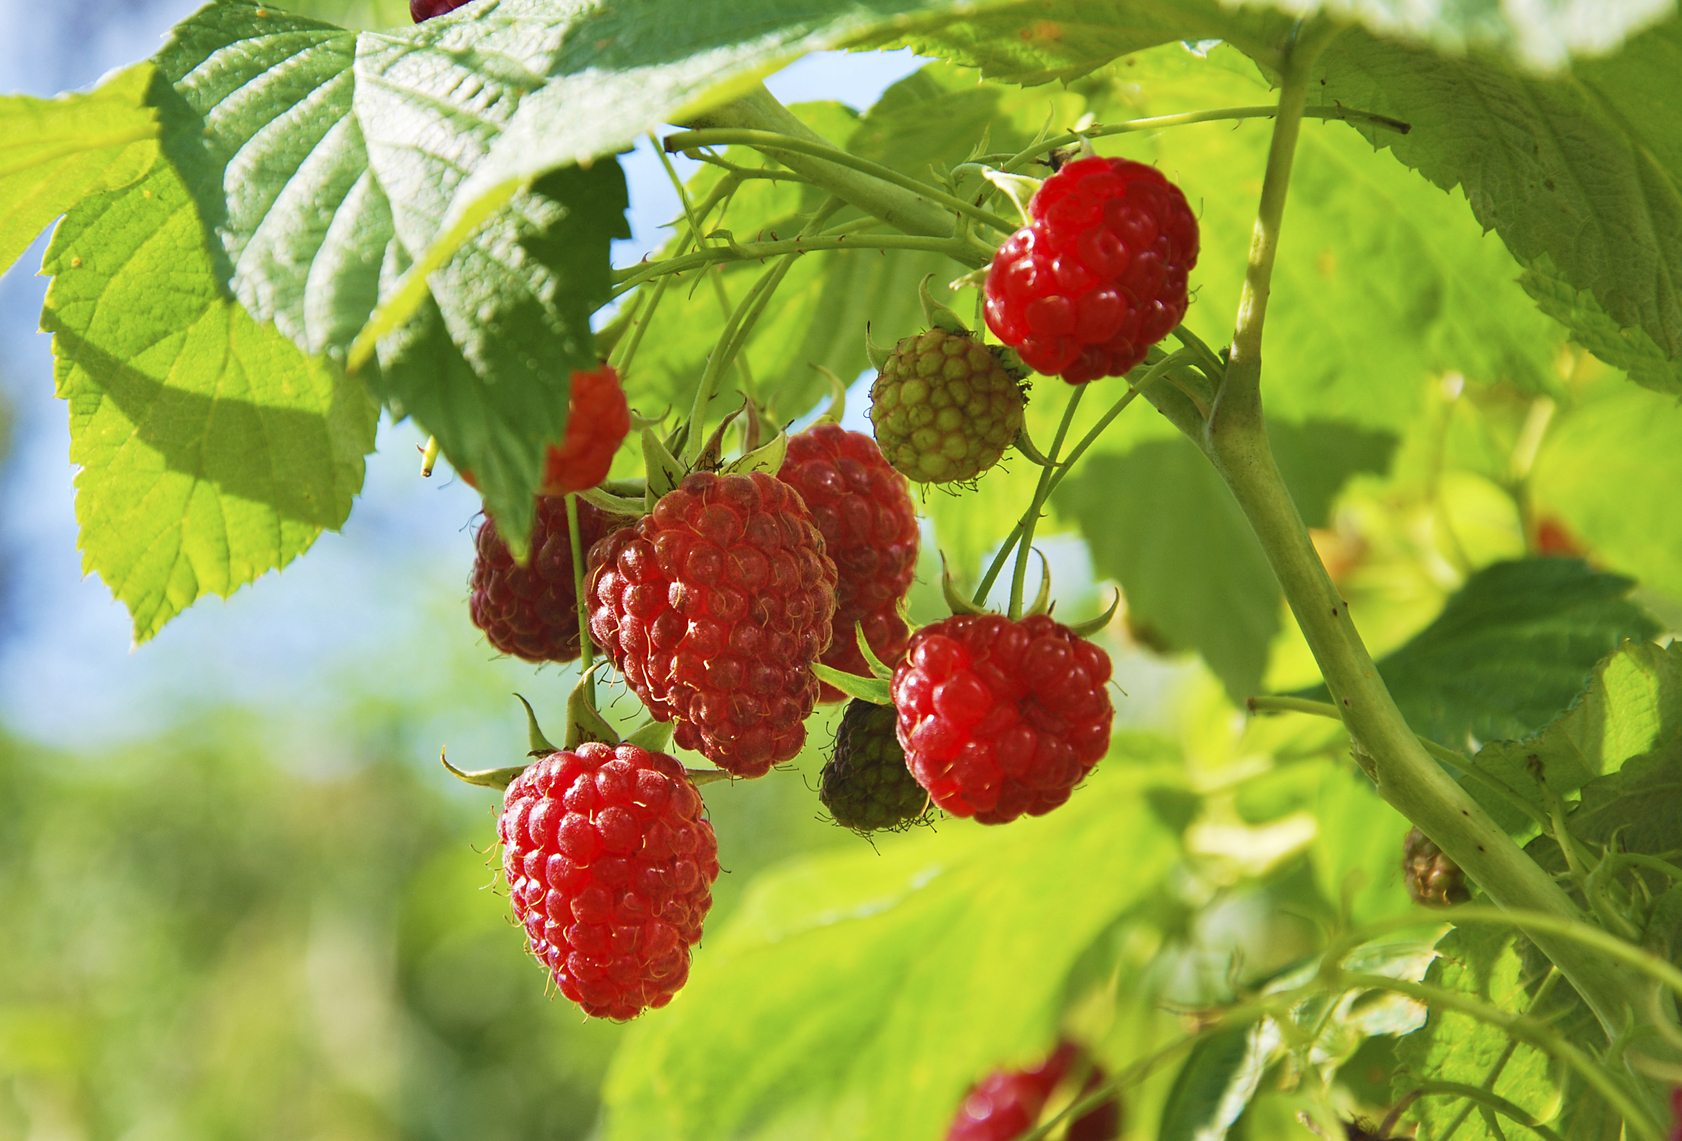 How to Harvest Raspberries